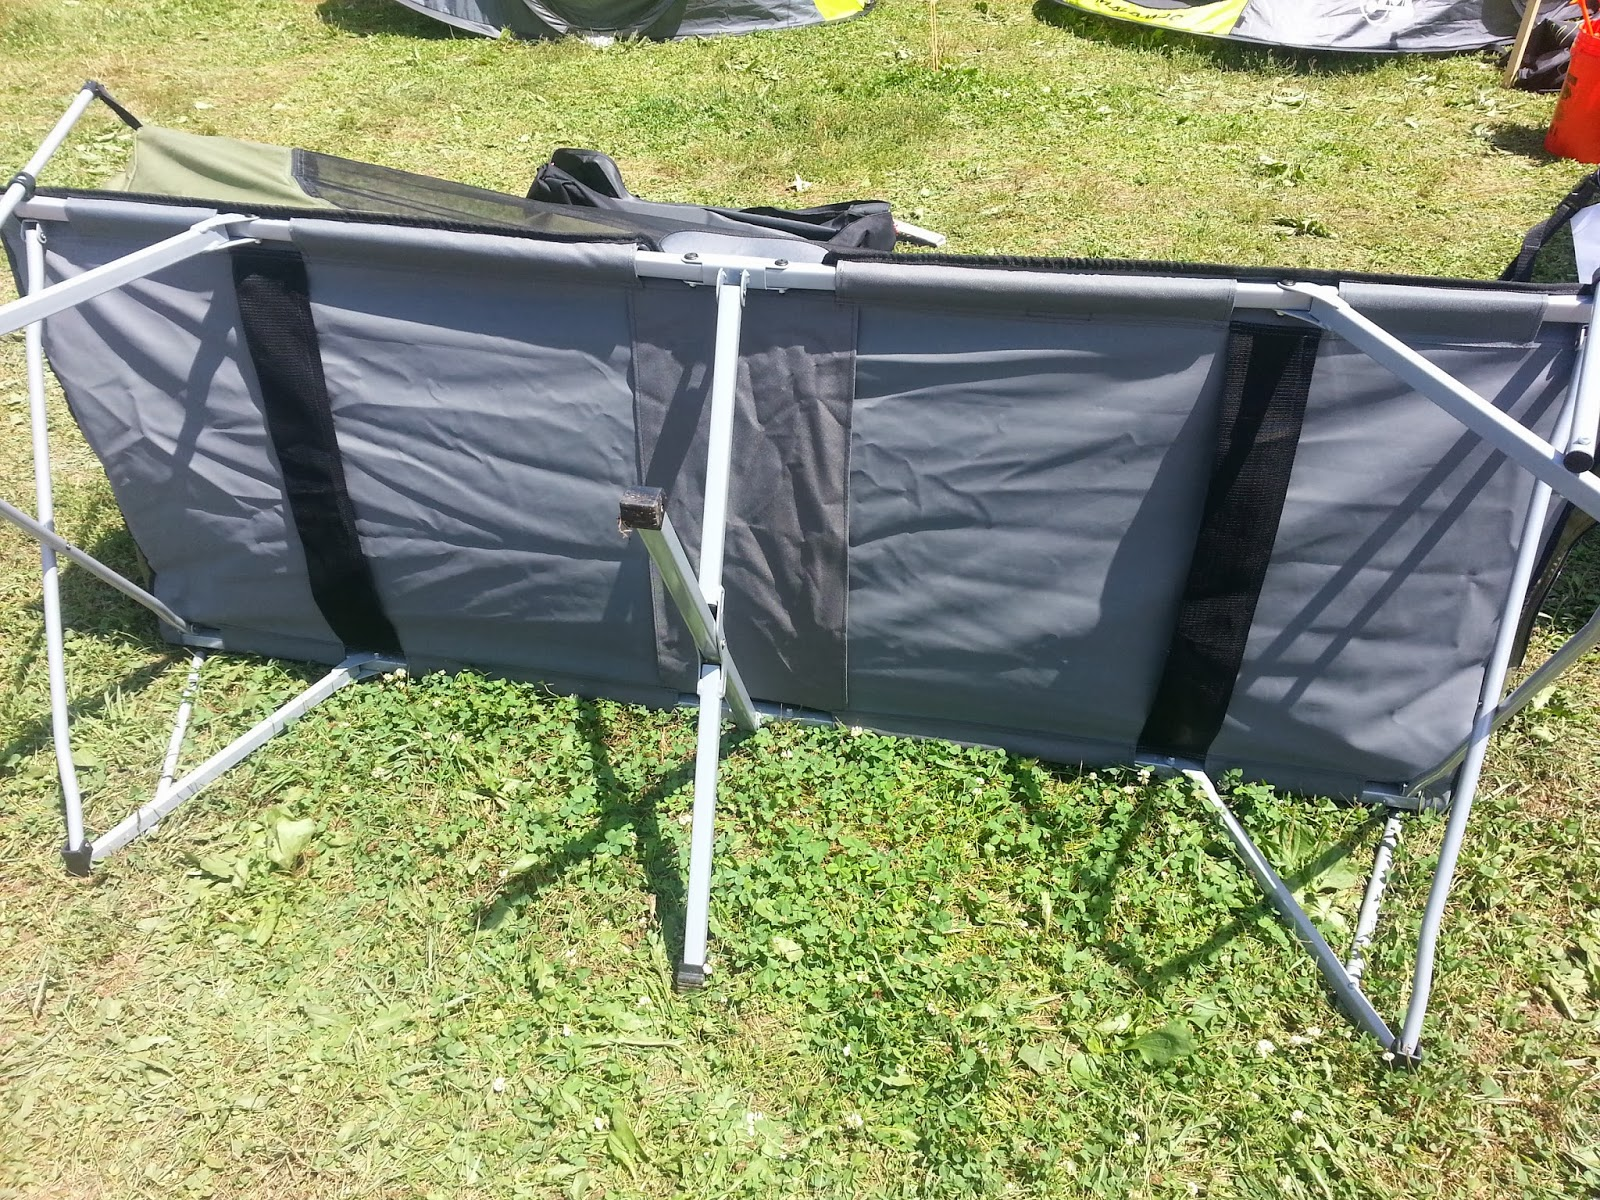 Family Tent C&ing & Family Tent Camping : Jet Tent Bunker XL Tent Cot by OzTent